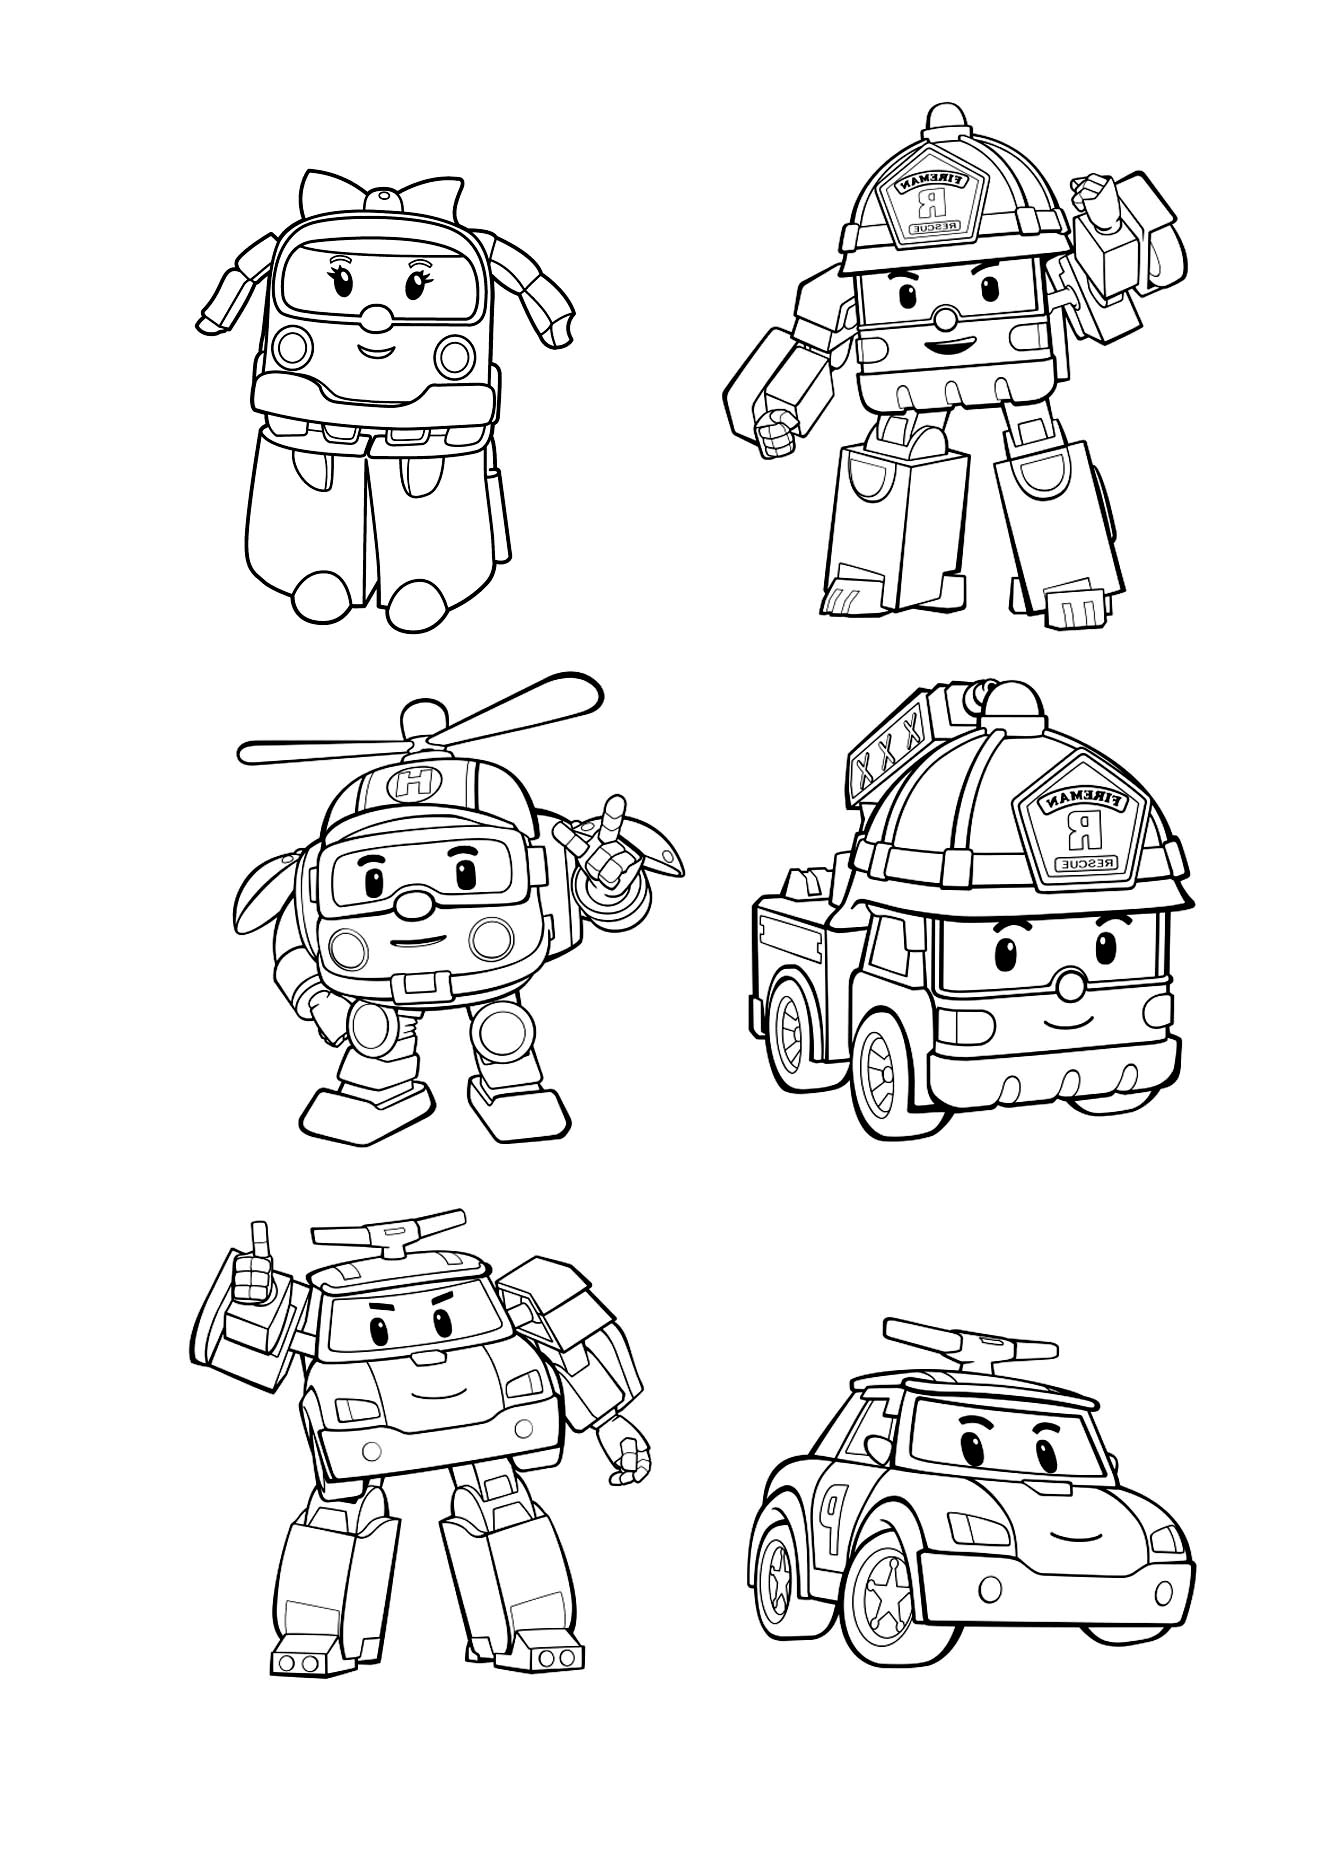 Funny Robocar Poli coloring page for kids